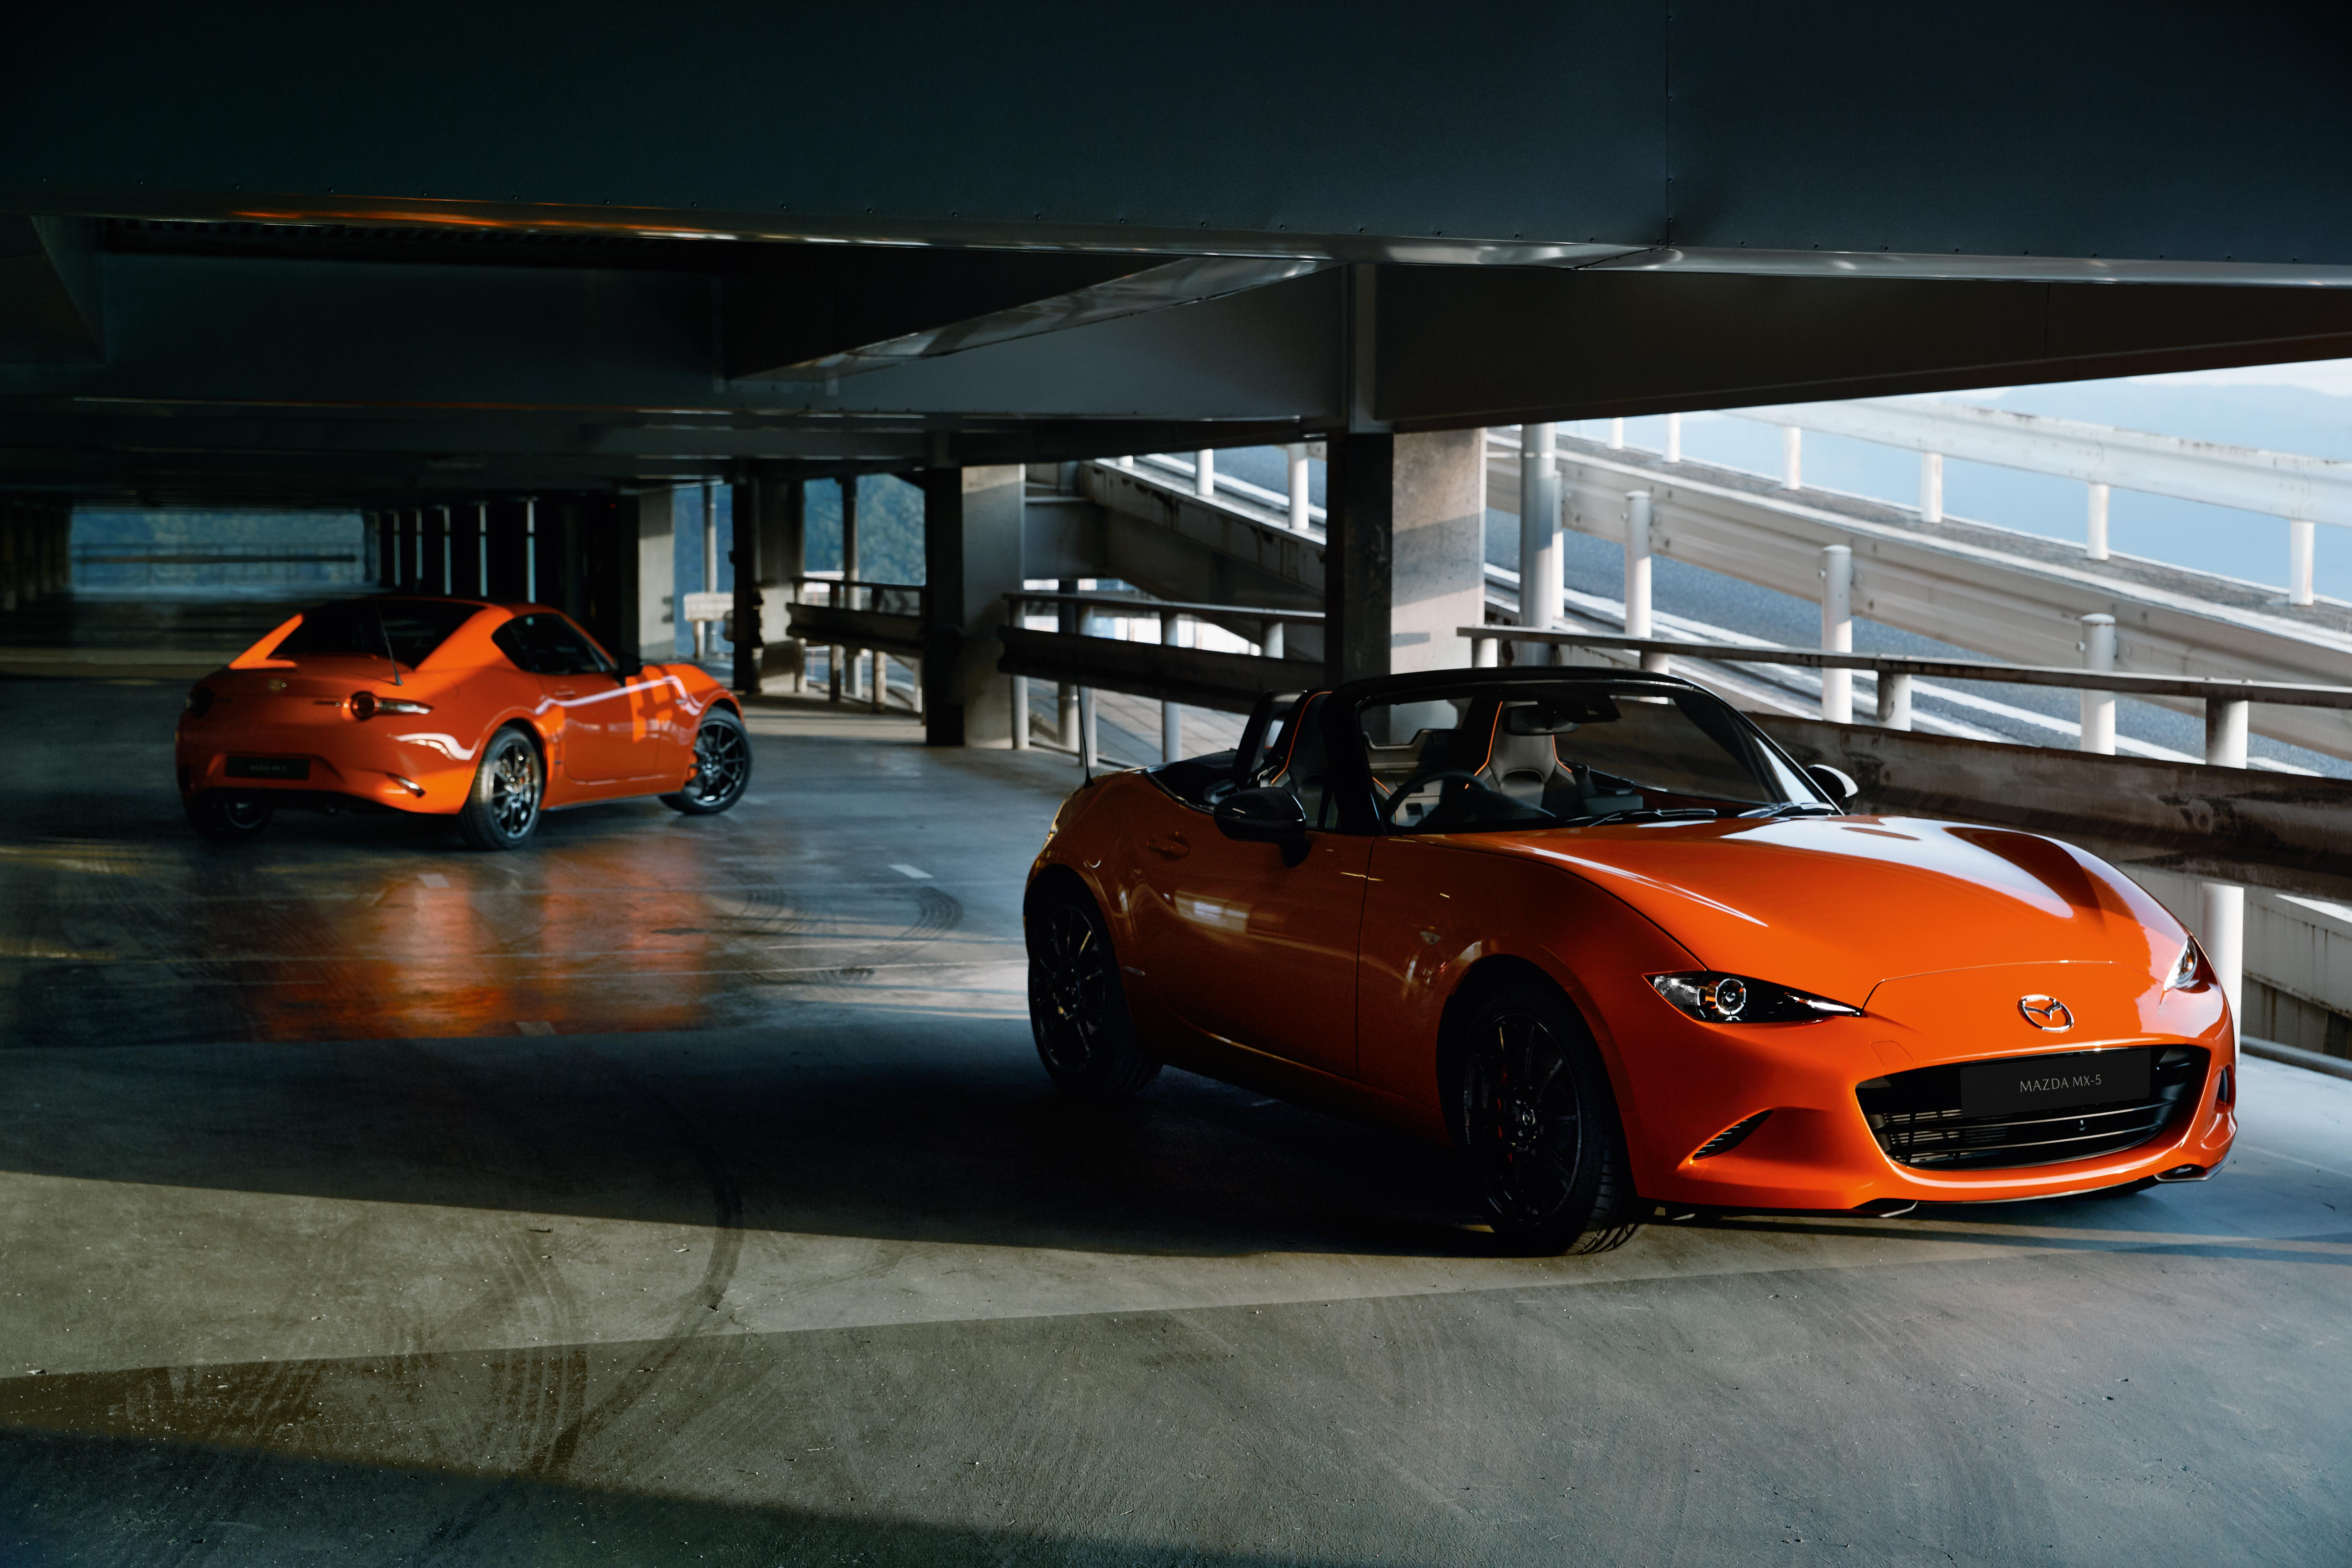 30th Anniversary Limited Edition MX-5 in converitble and RF